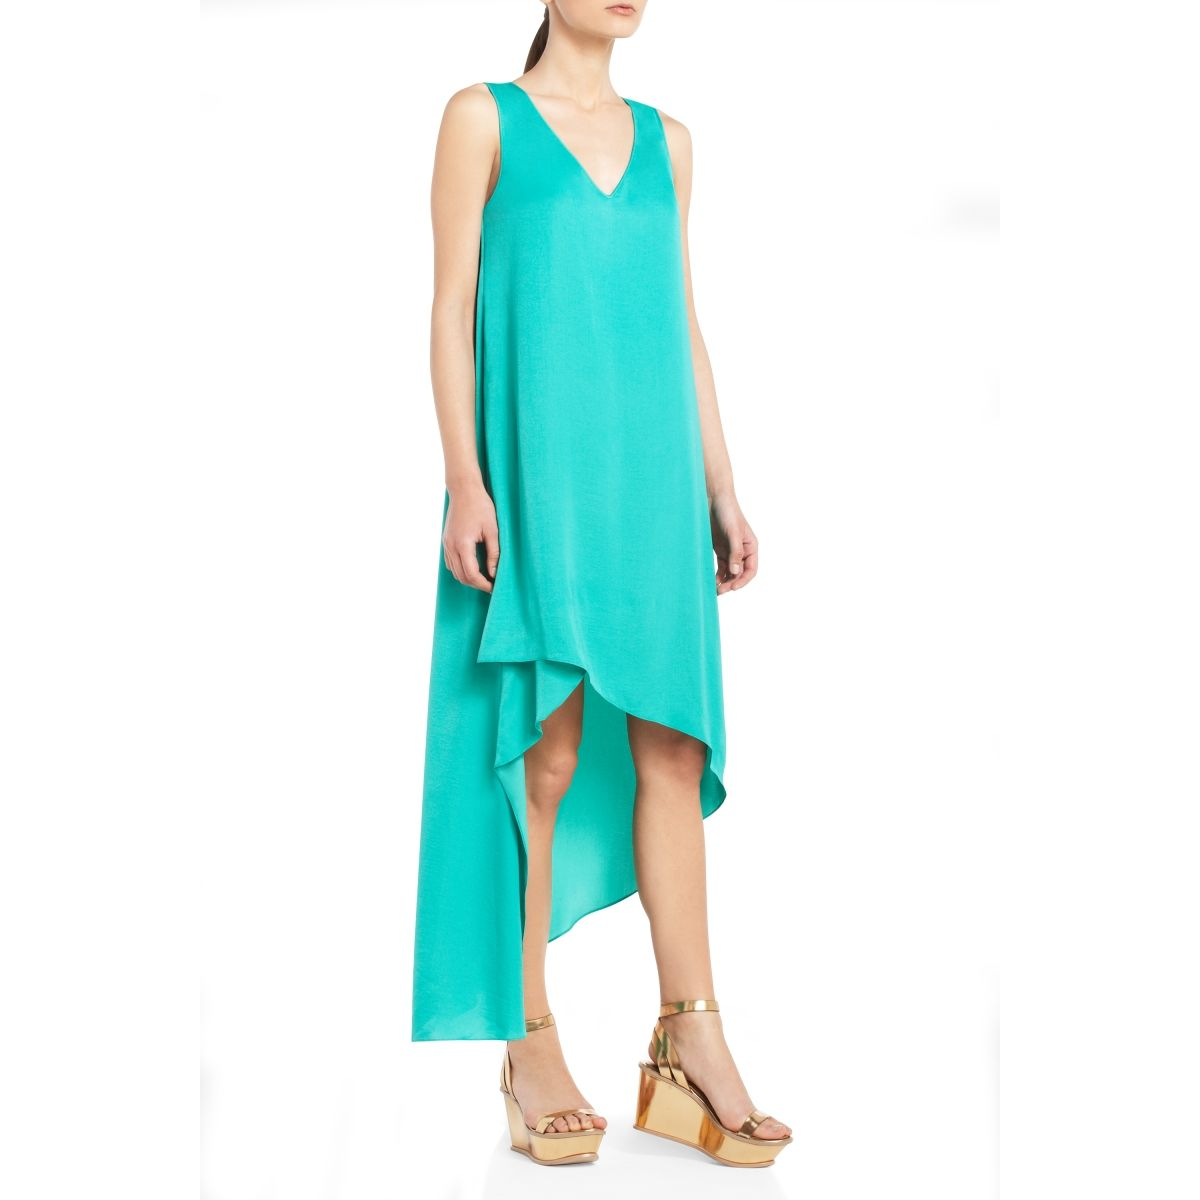 BCBGMAXAZRIA - AVERY ASYMMETRICAL DRESS | bcbg wishlist | Pinterest ...